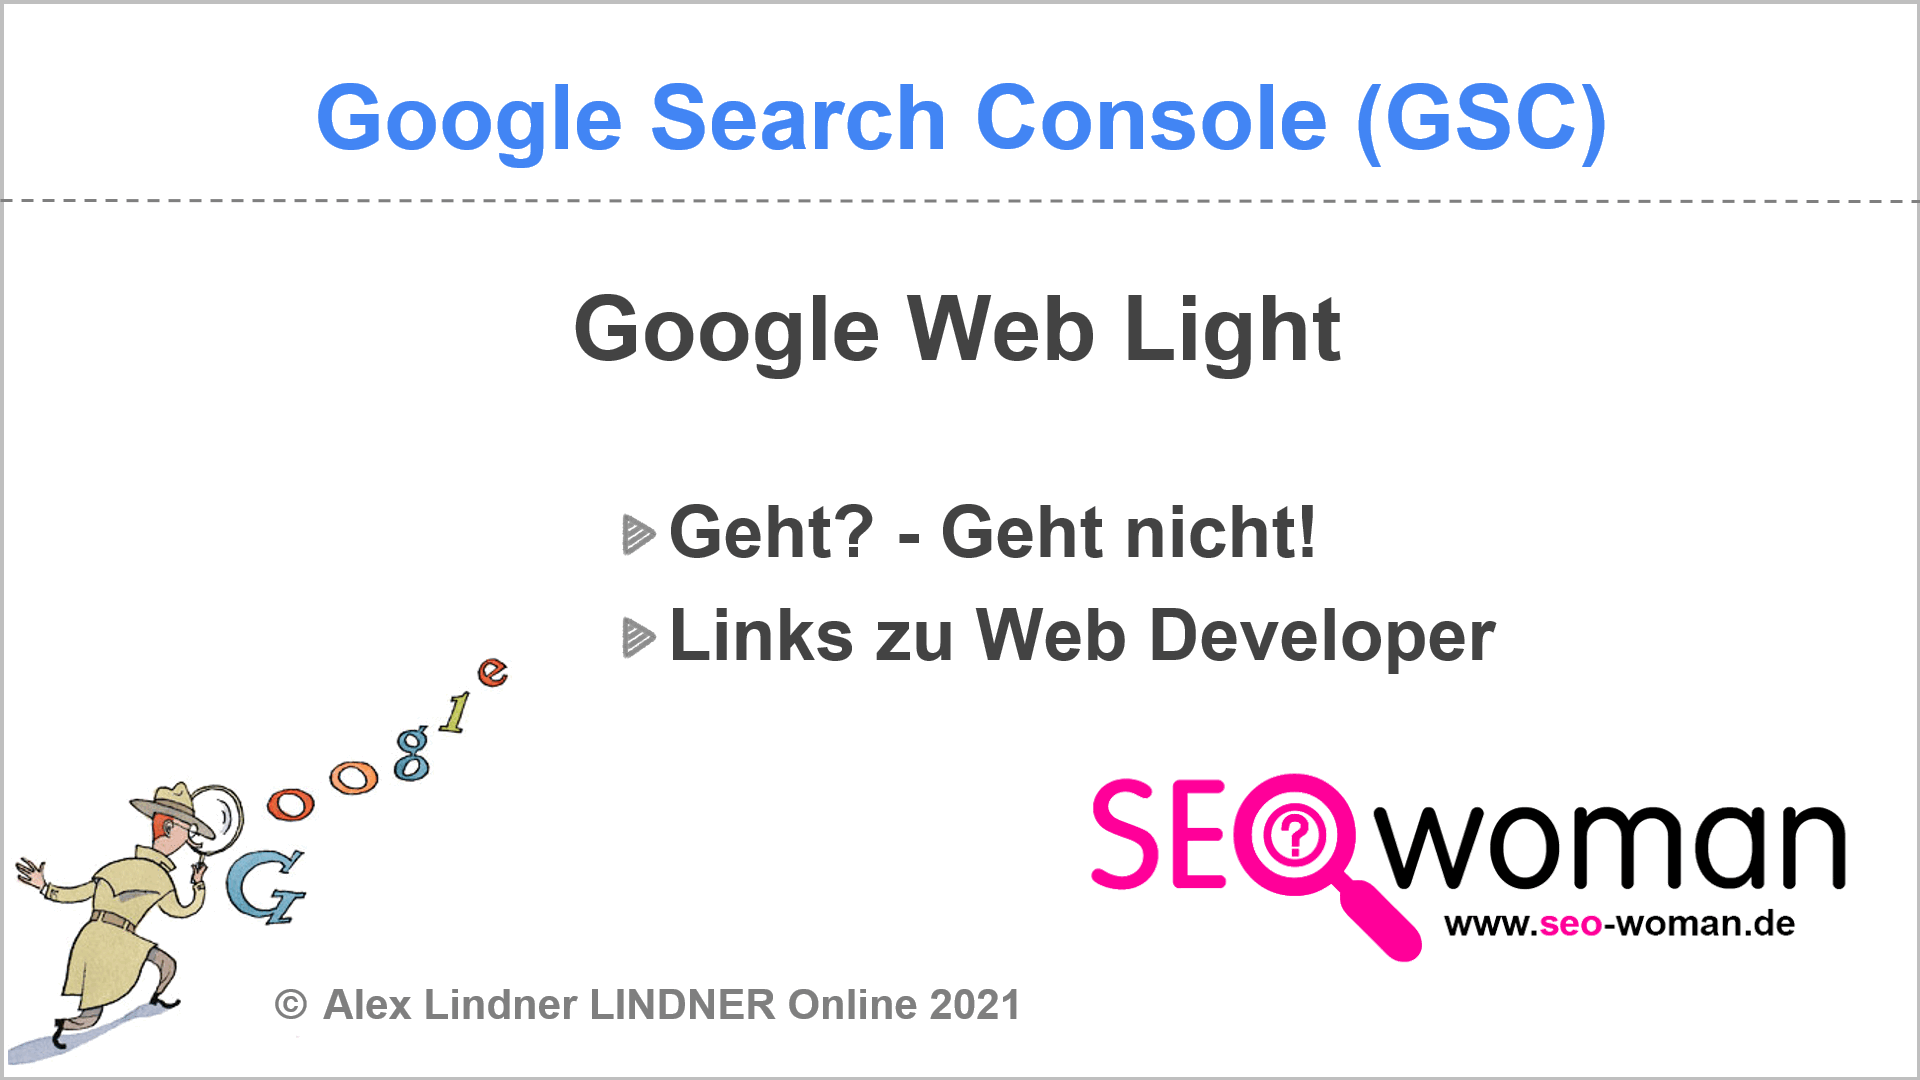 Google Search Console Weblight